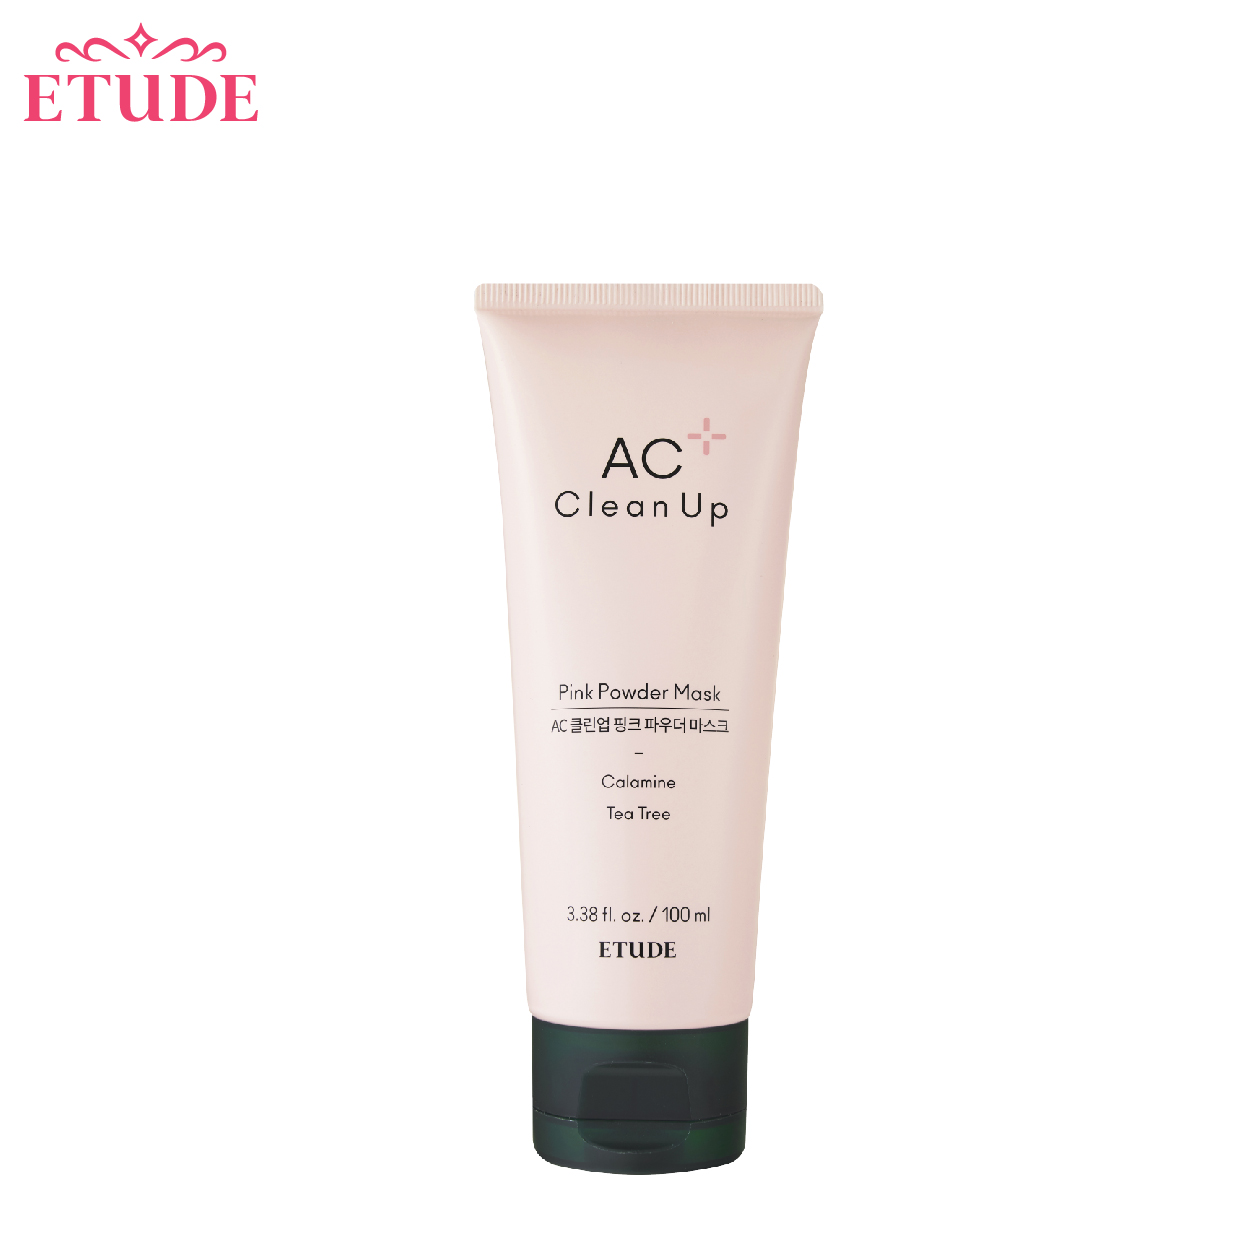 Etude-TN Hair + Were-24